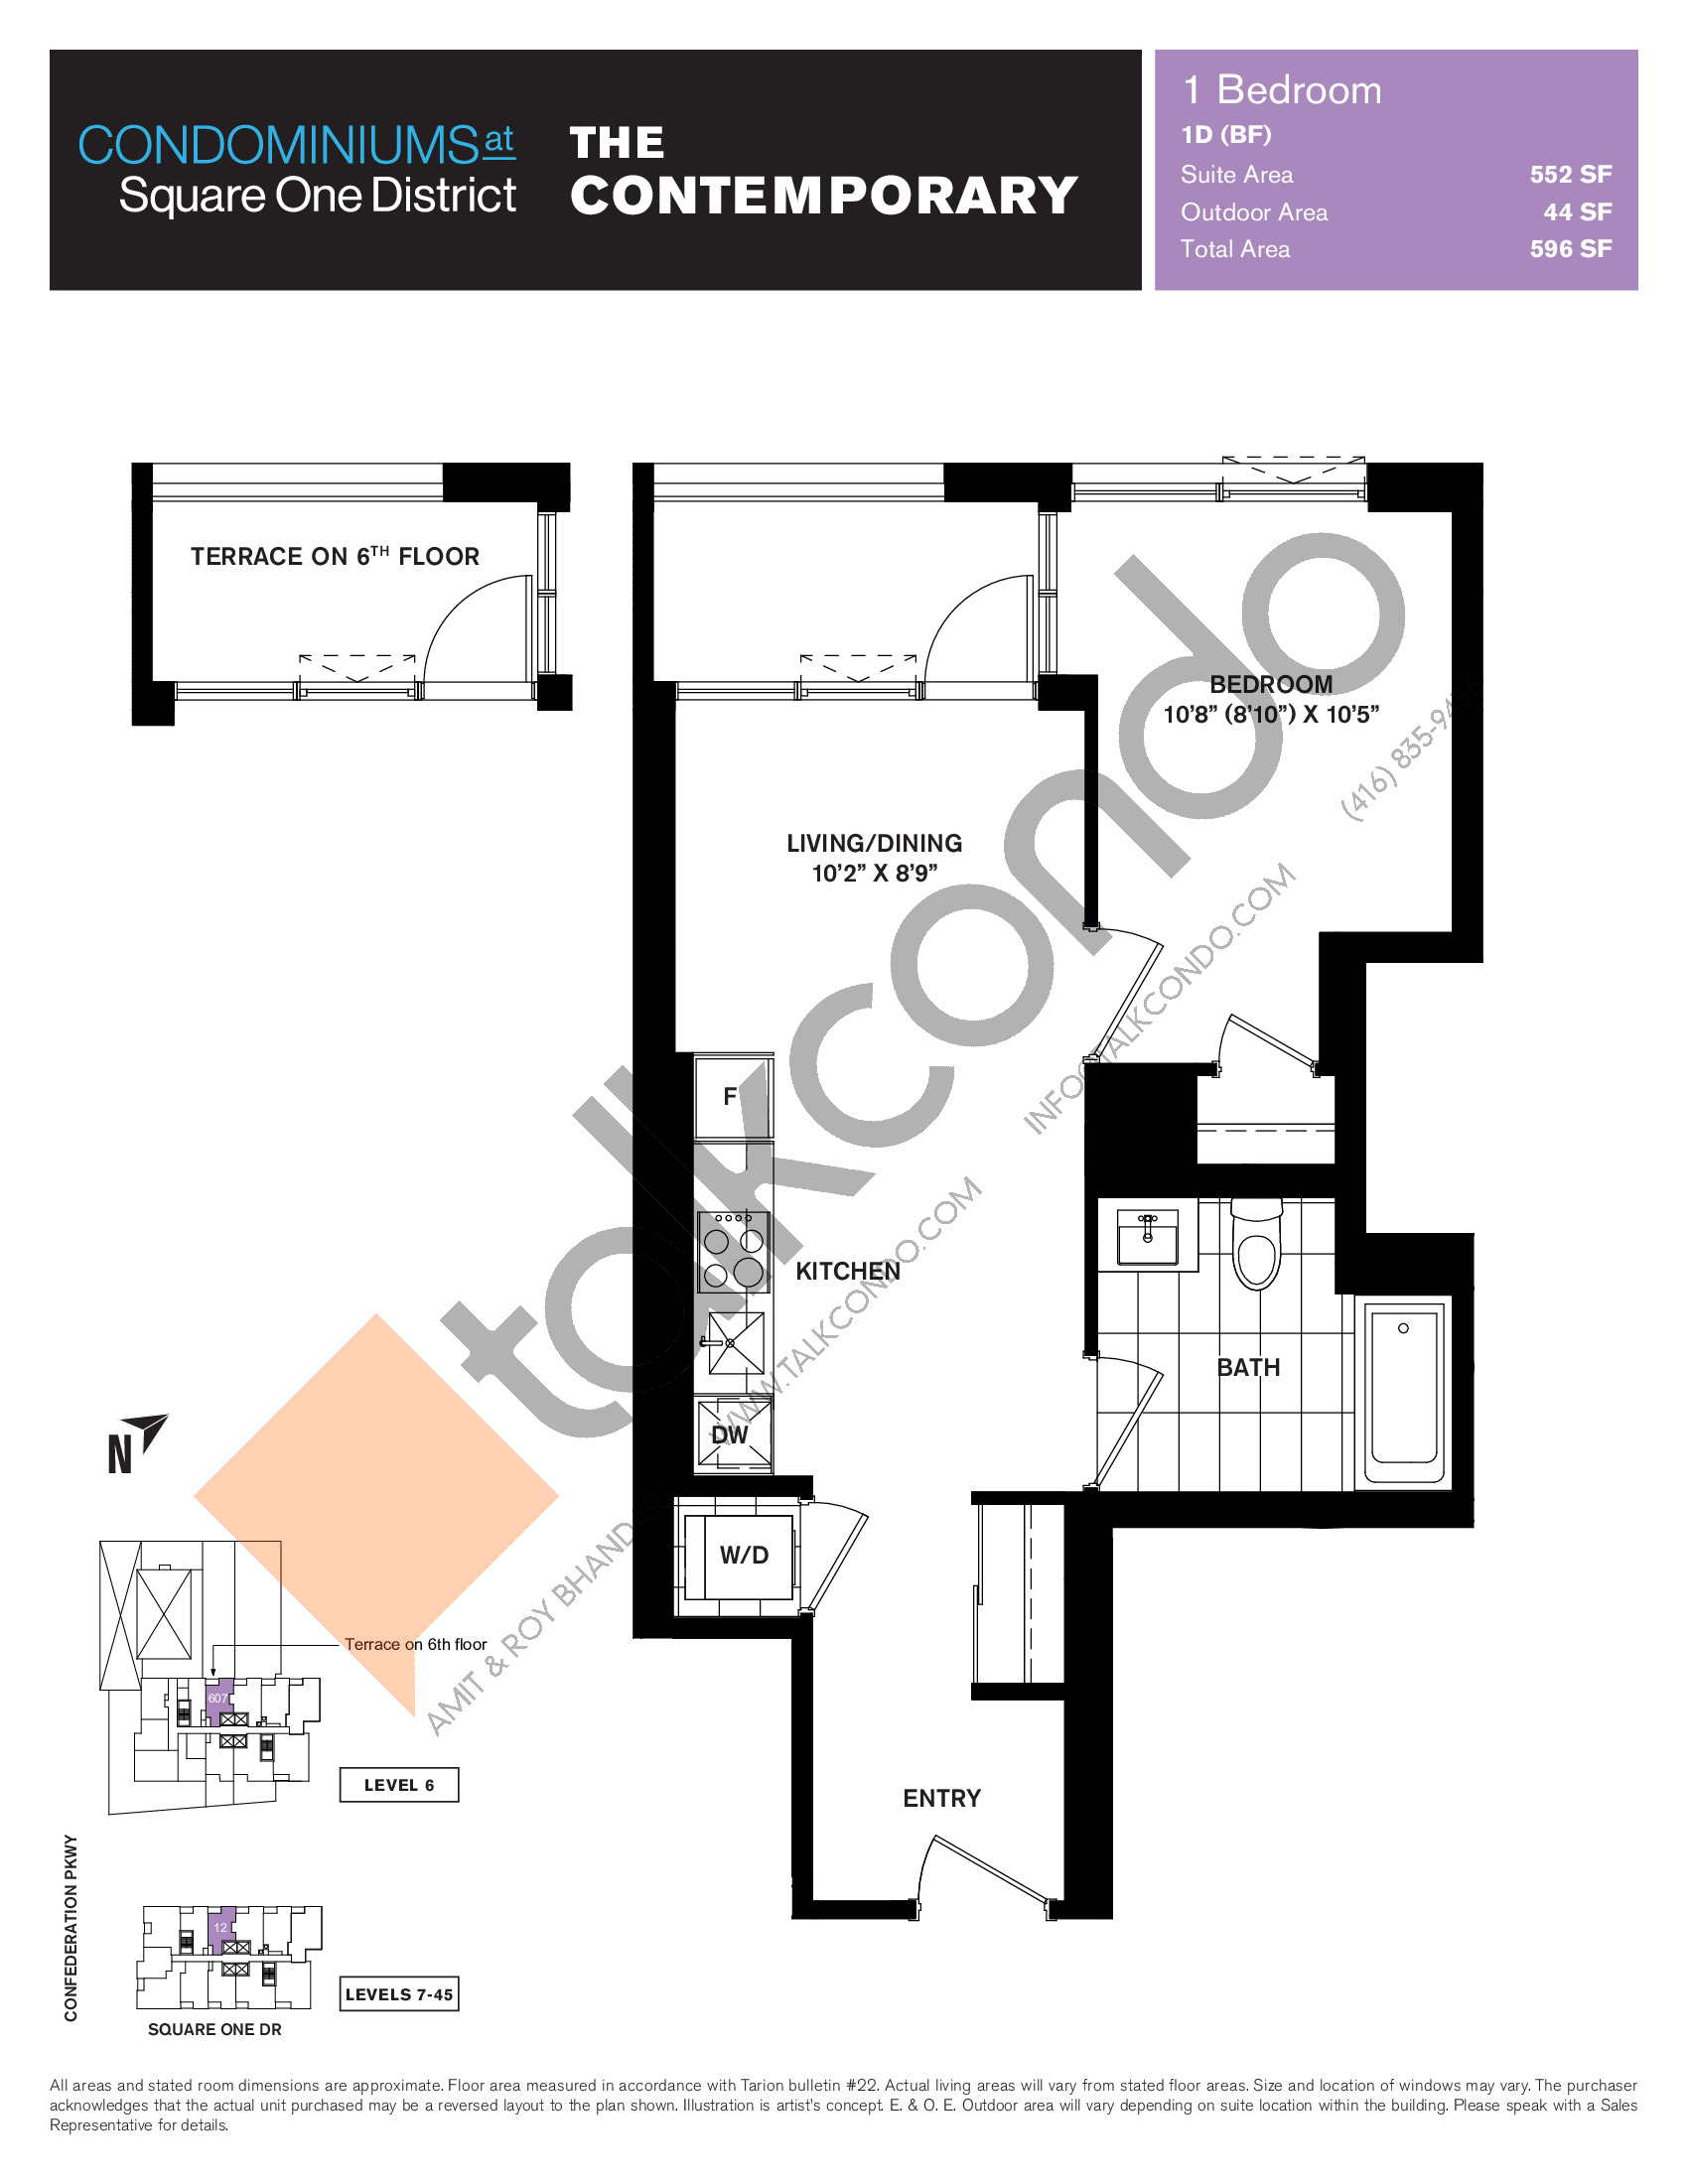 The Contemporary Floor Plan at Condominiums at Square One District - 552 sq.ft